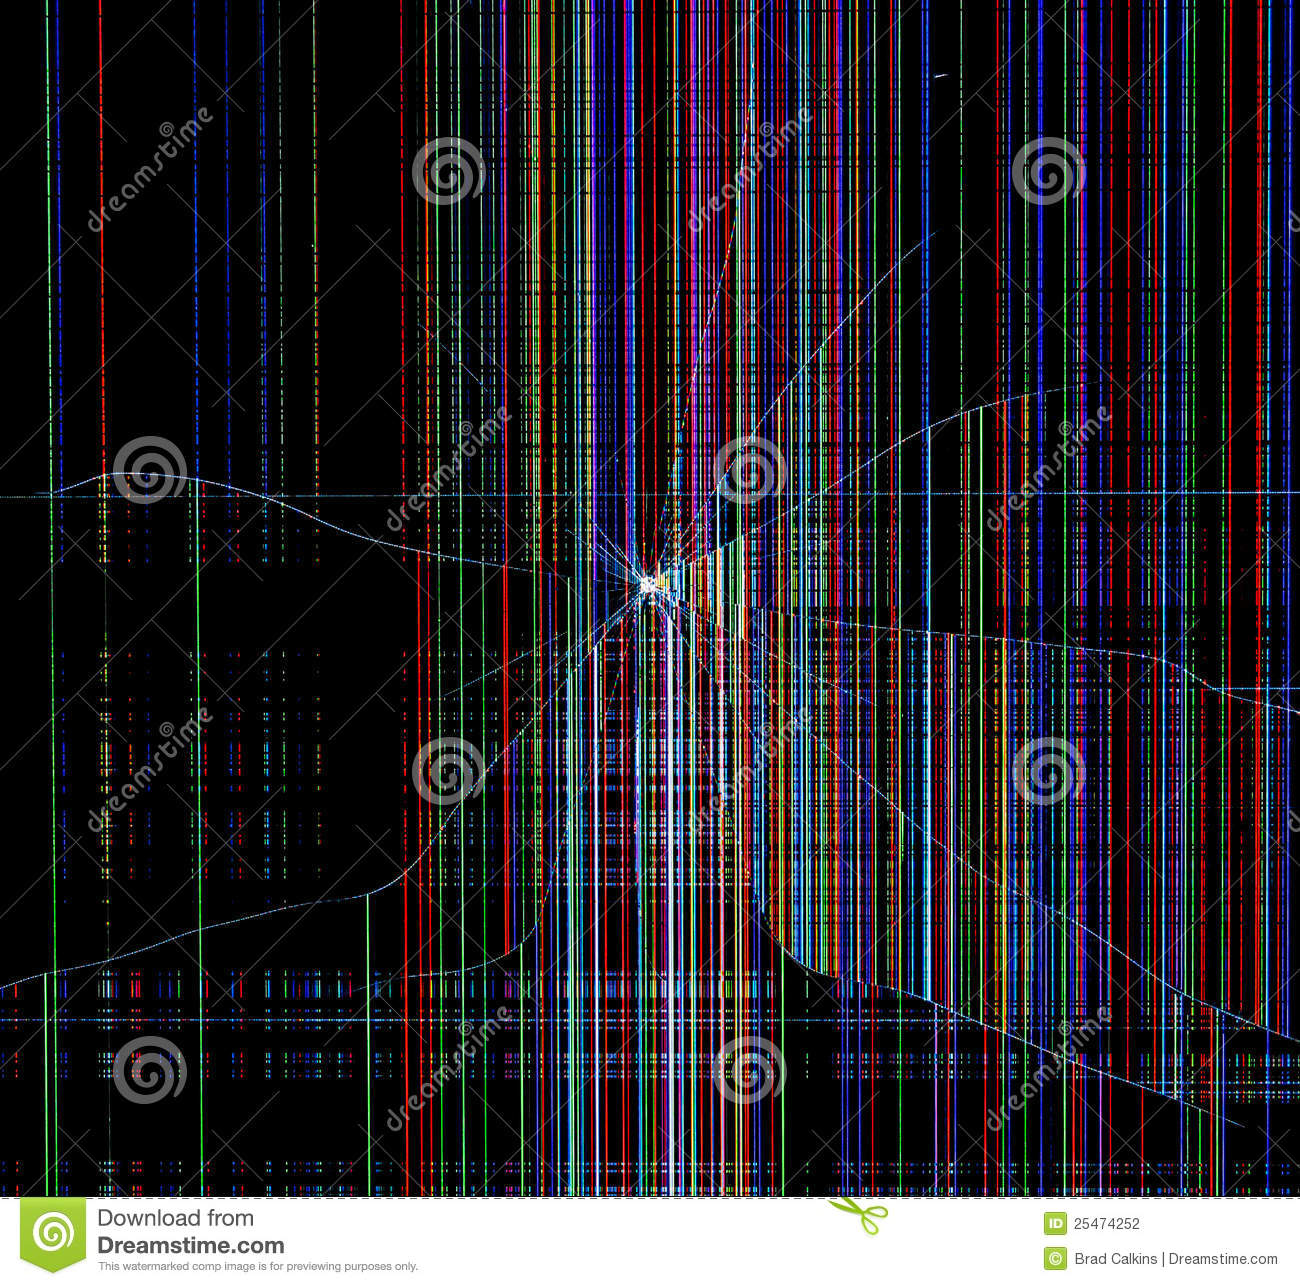 Broken Screen Wallpaper: Broken Screen Stock Photo. Image Of Television, Phone